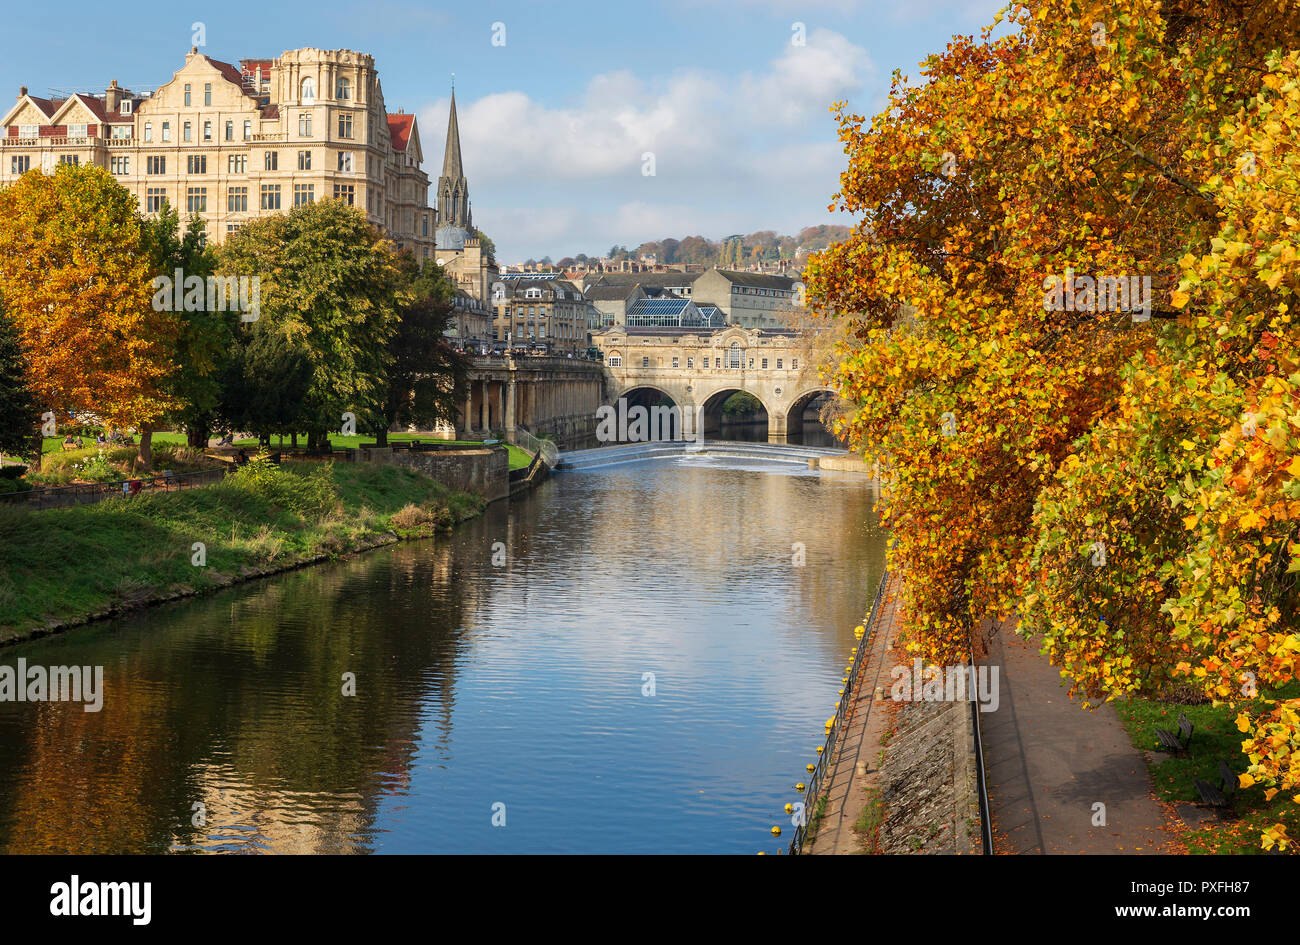 The famous landmarks of Pulteney Weir and Pulteney Bridge surrounded by vibrant autumnal trees on the River Avon in Bath, UK. - Stock Image